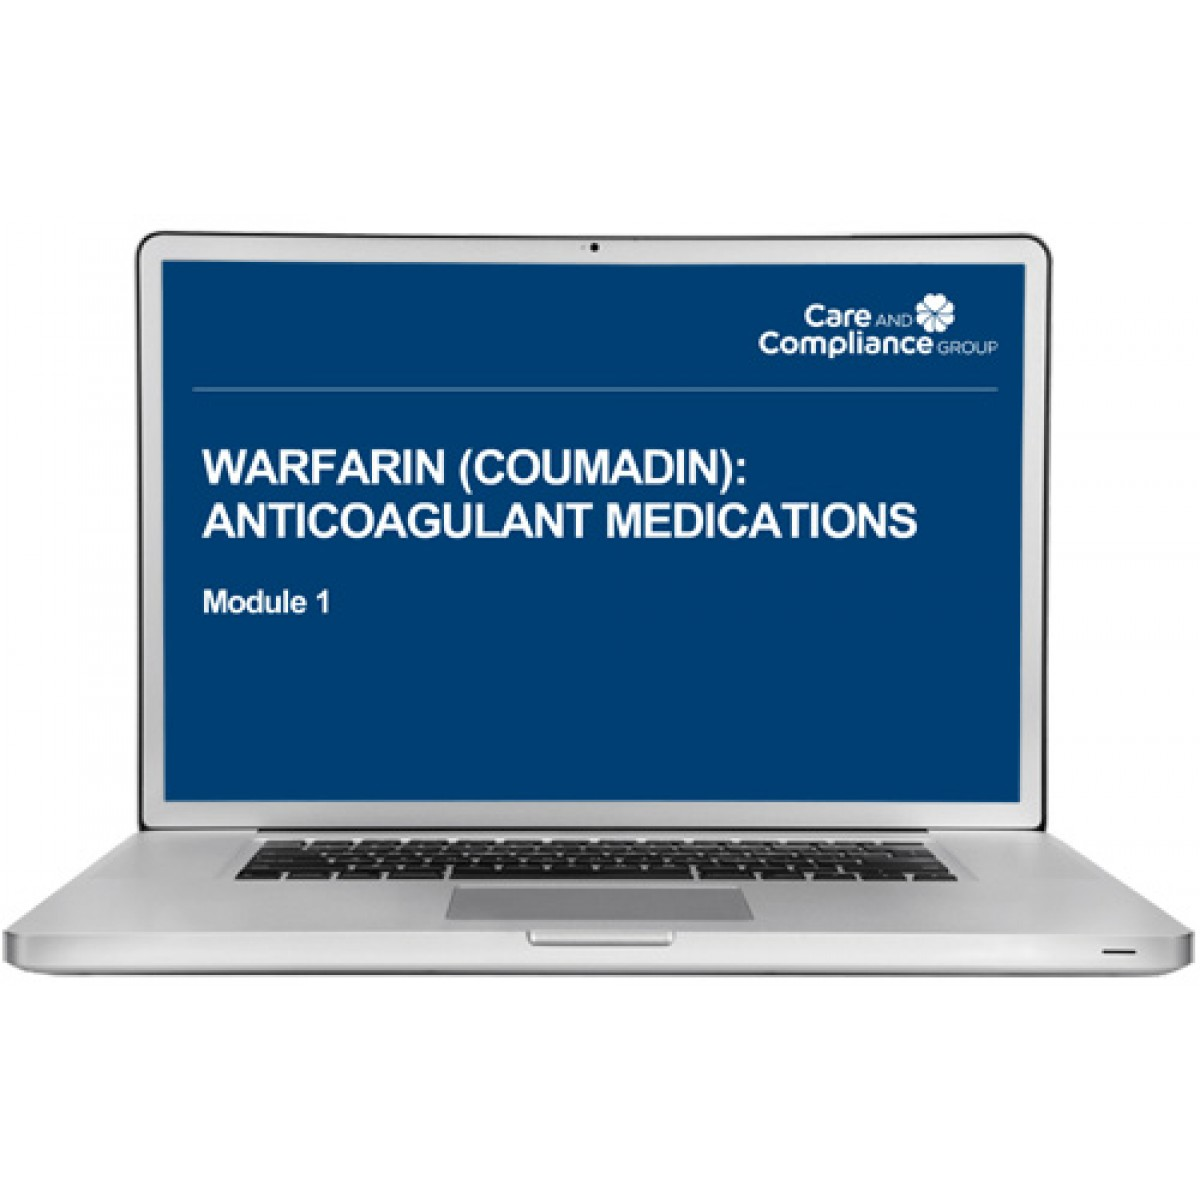 Warfarin Coumadin Anticoagulant Medications Aquire